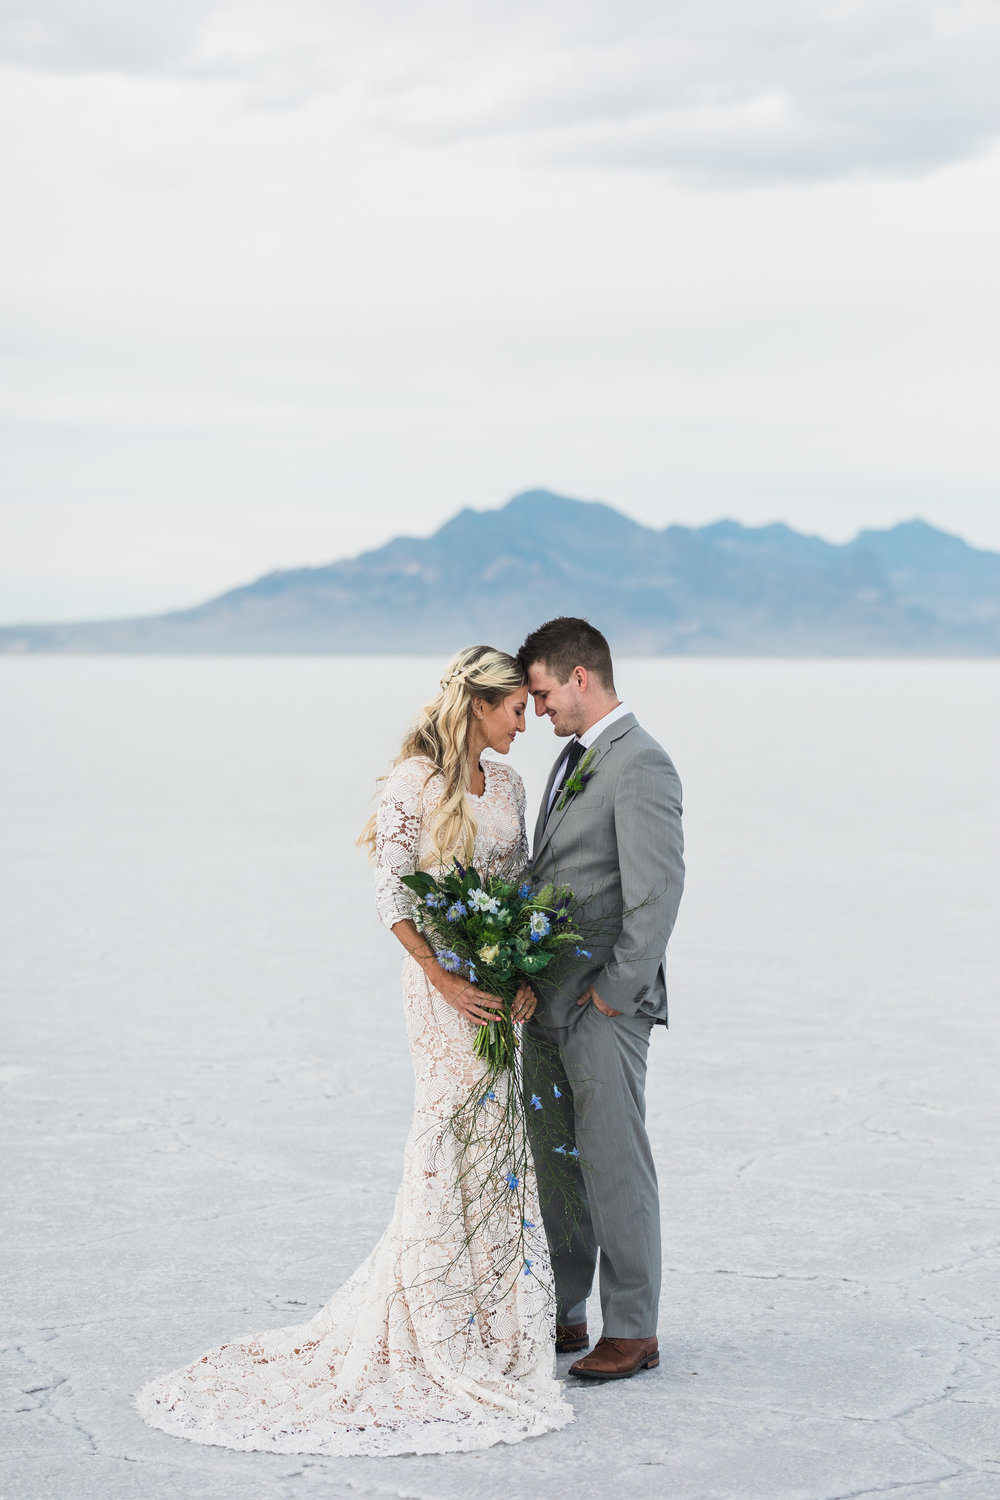 Elizabeth Cooper Design modest wedding dress L floral studio bouquet Utah salt flats bridals